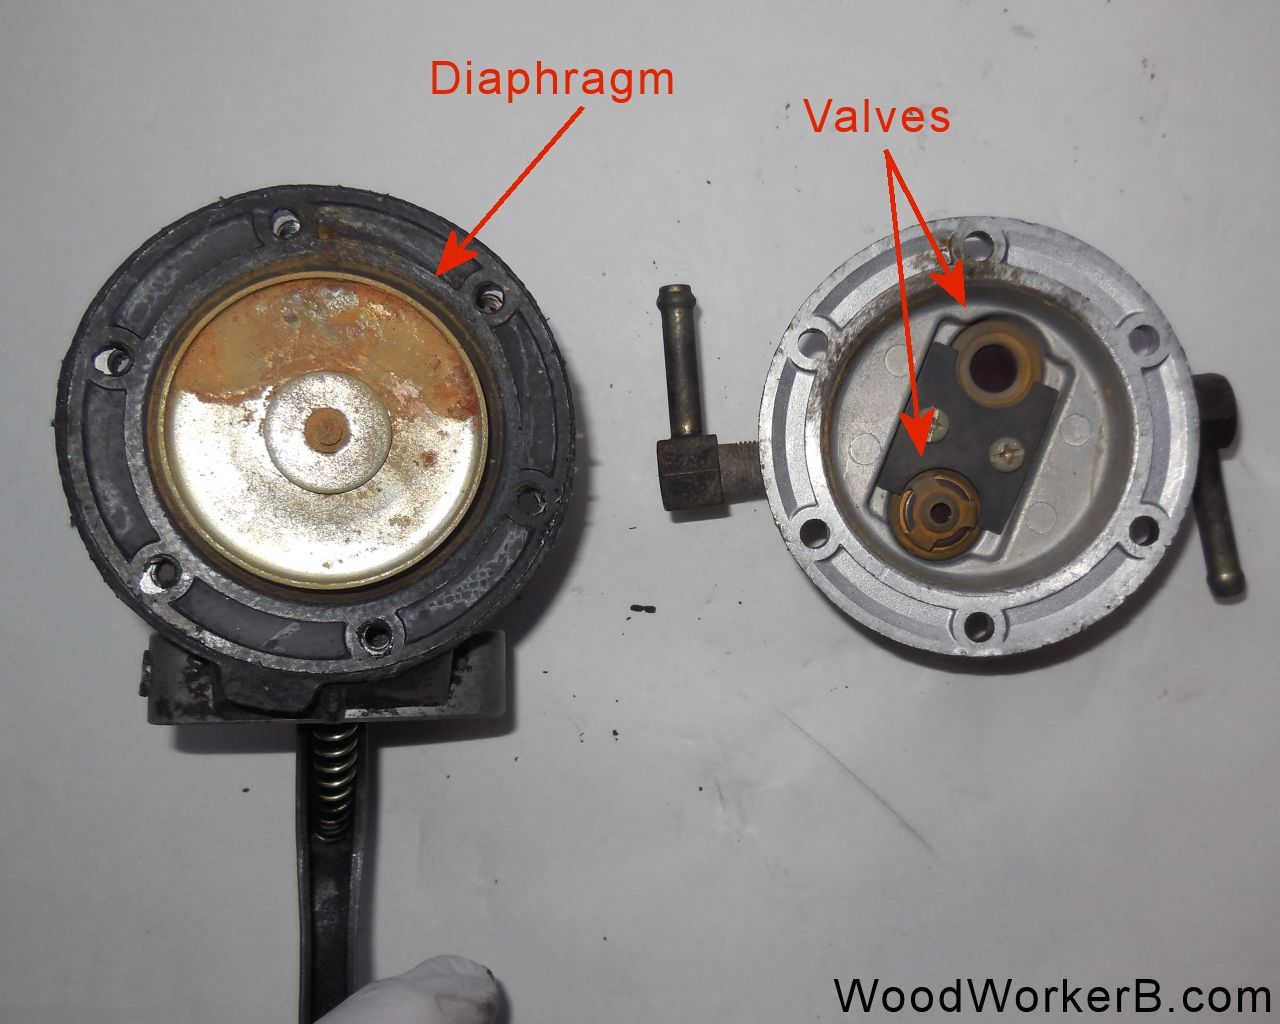 FuelPumpOpened datsun 240z mechanical fuel pump rebuild woodworkerb  at webbmarketing.co